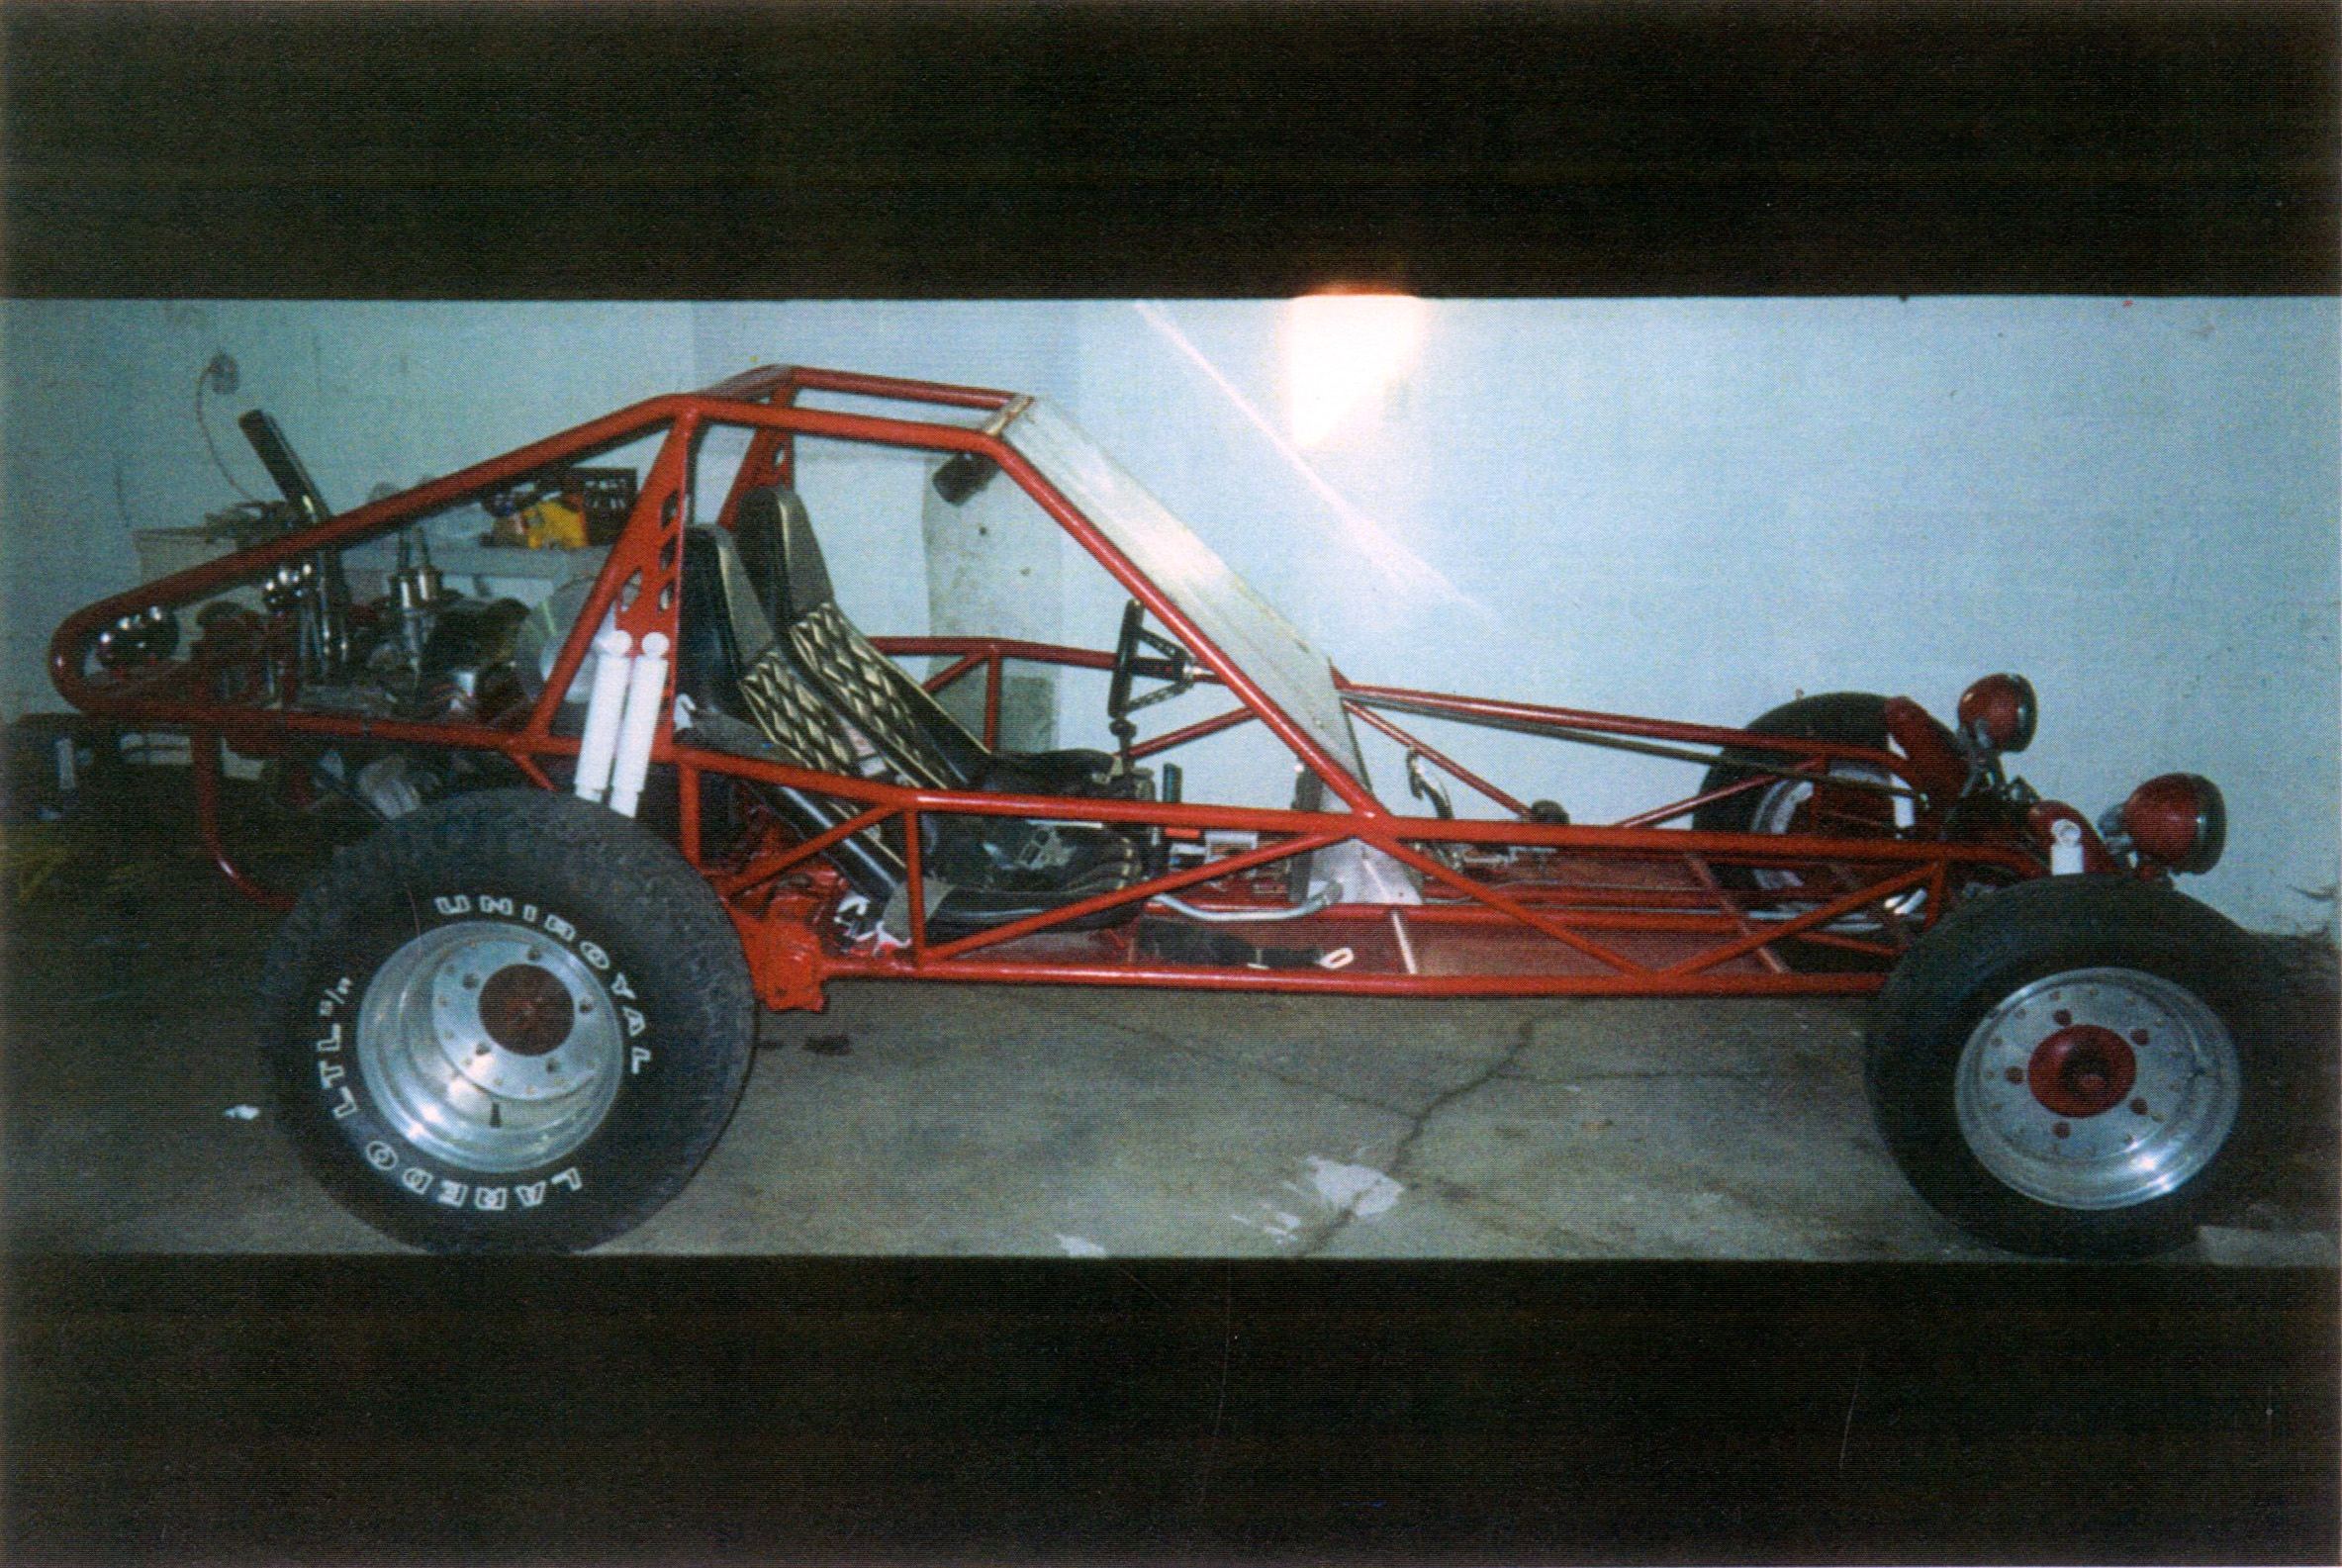 My Dunebuggy Project Mark